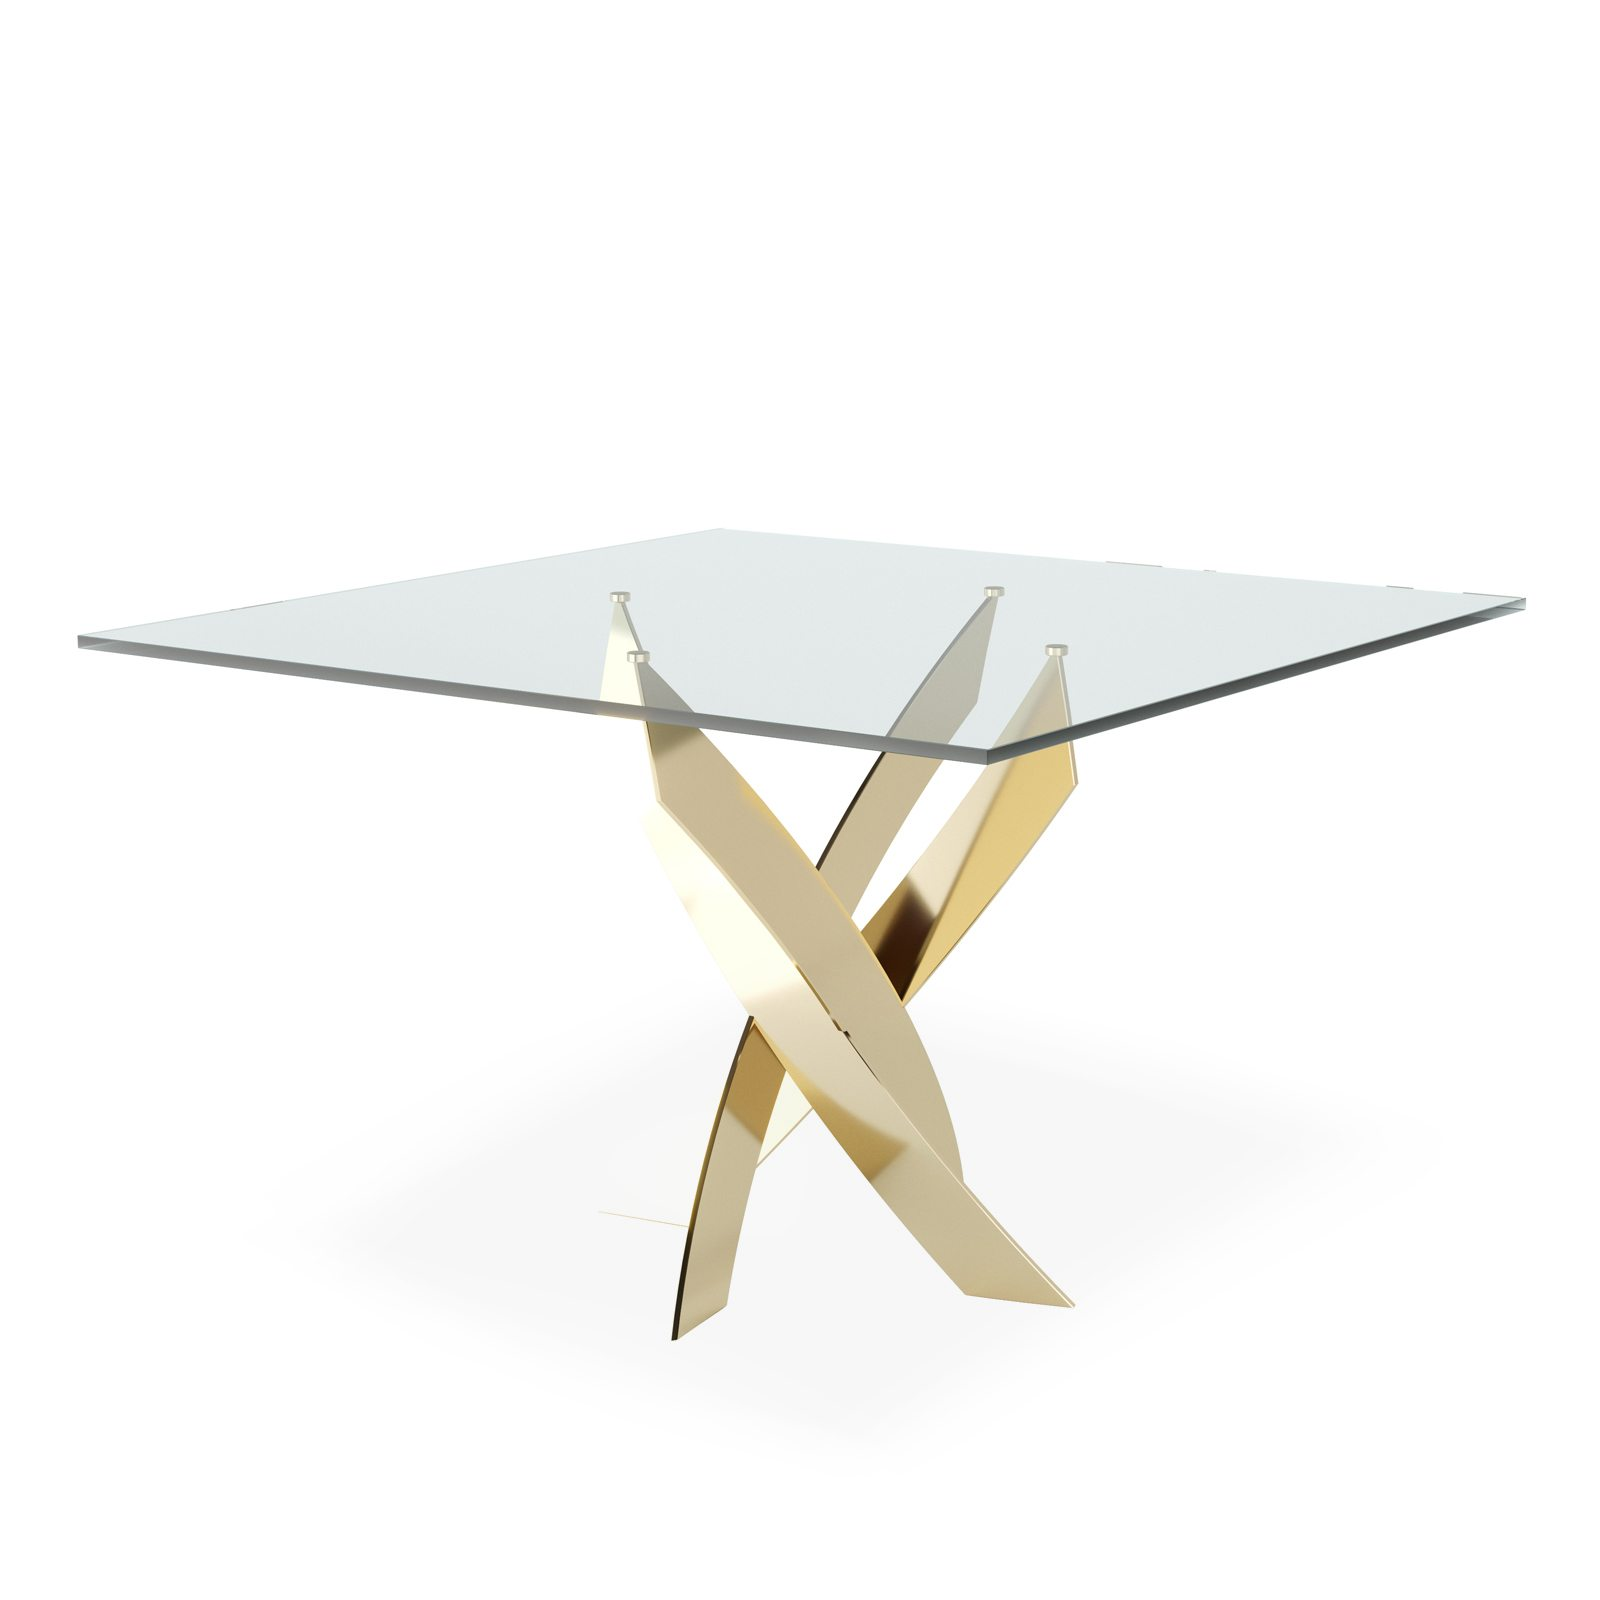 Helix-Dining-Table-Square-Brass-by-Bonham-&-Bonham-02